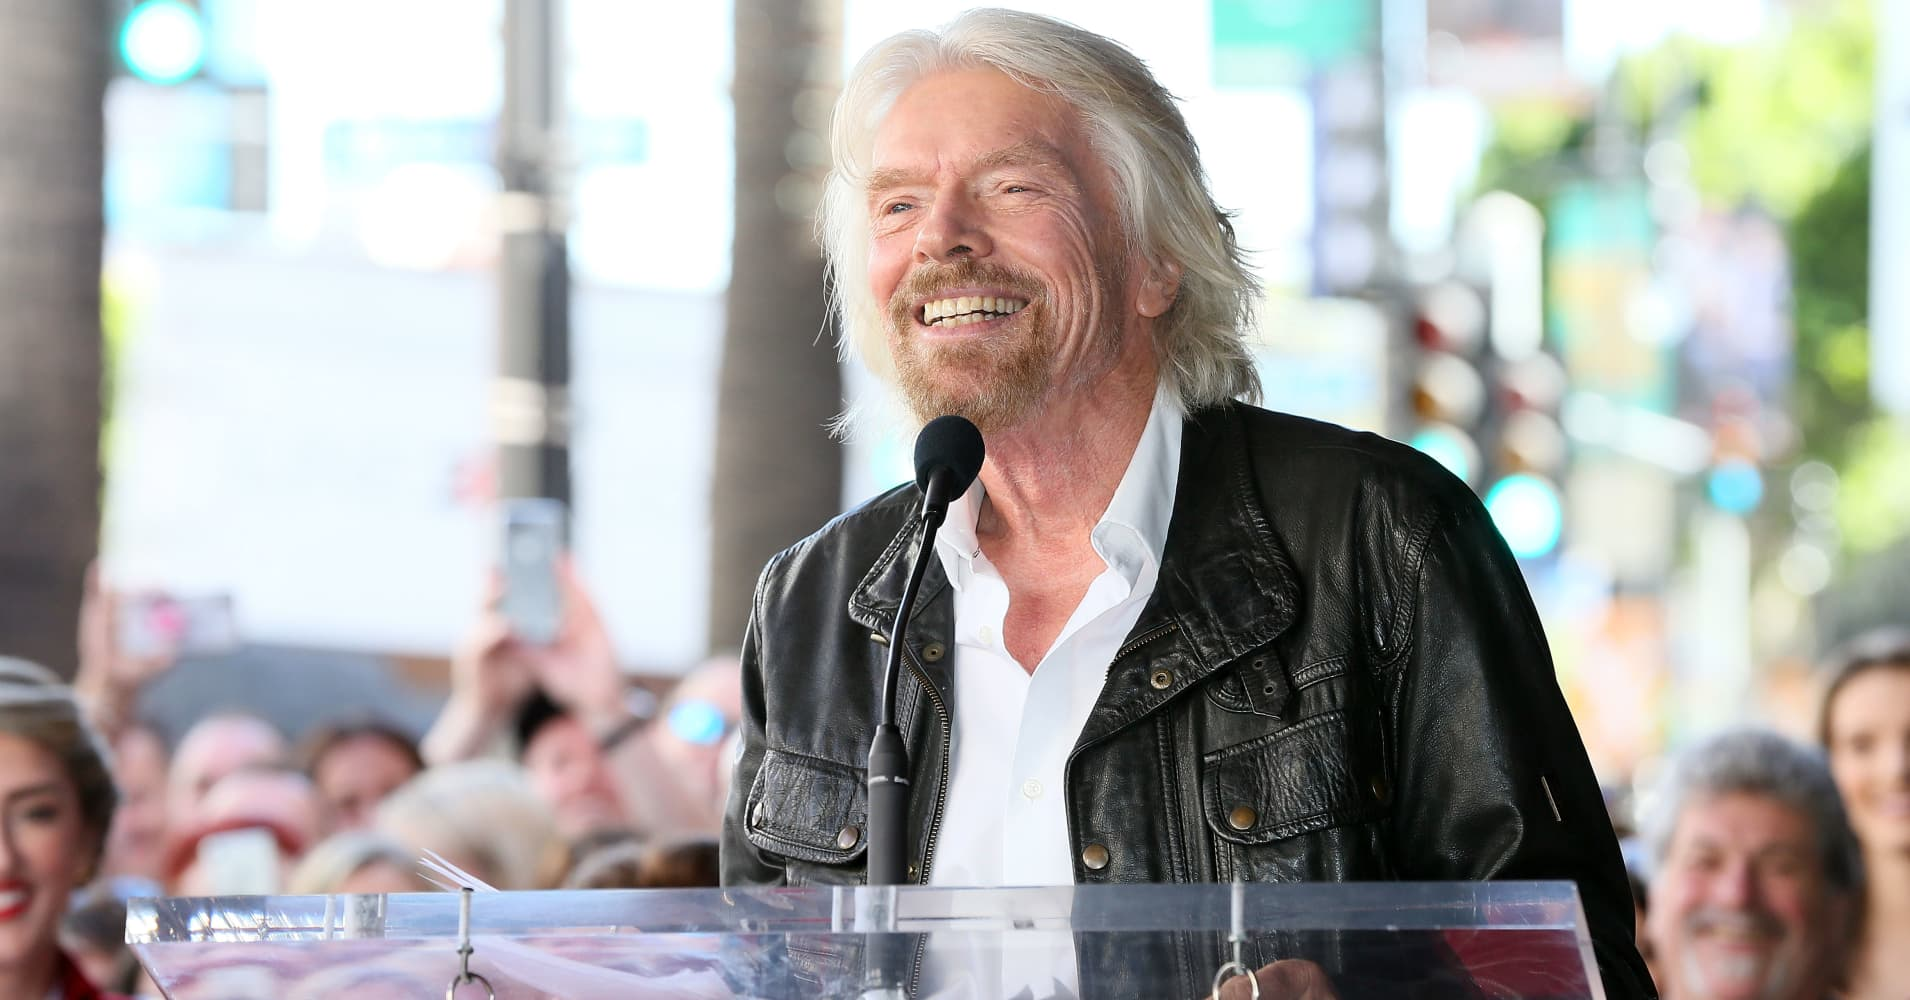 Richard Branson, Shaquille O'Neal, Daymond John and others reveal what they wish they knew at 25 years old